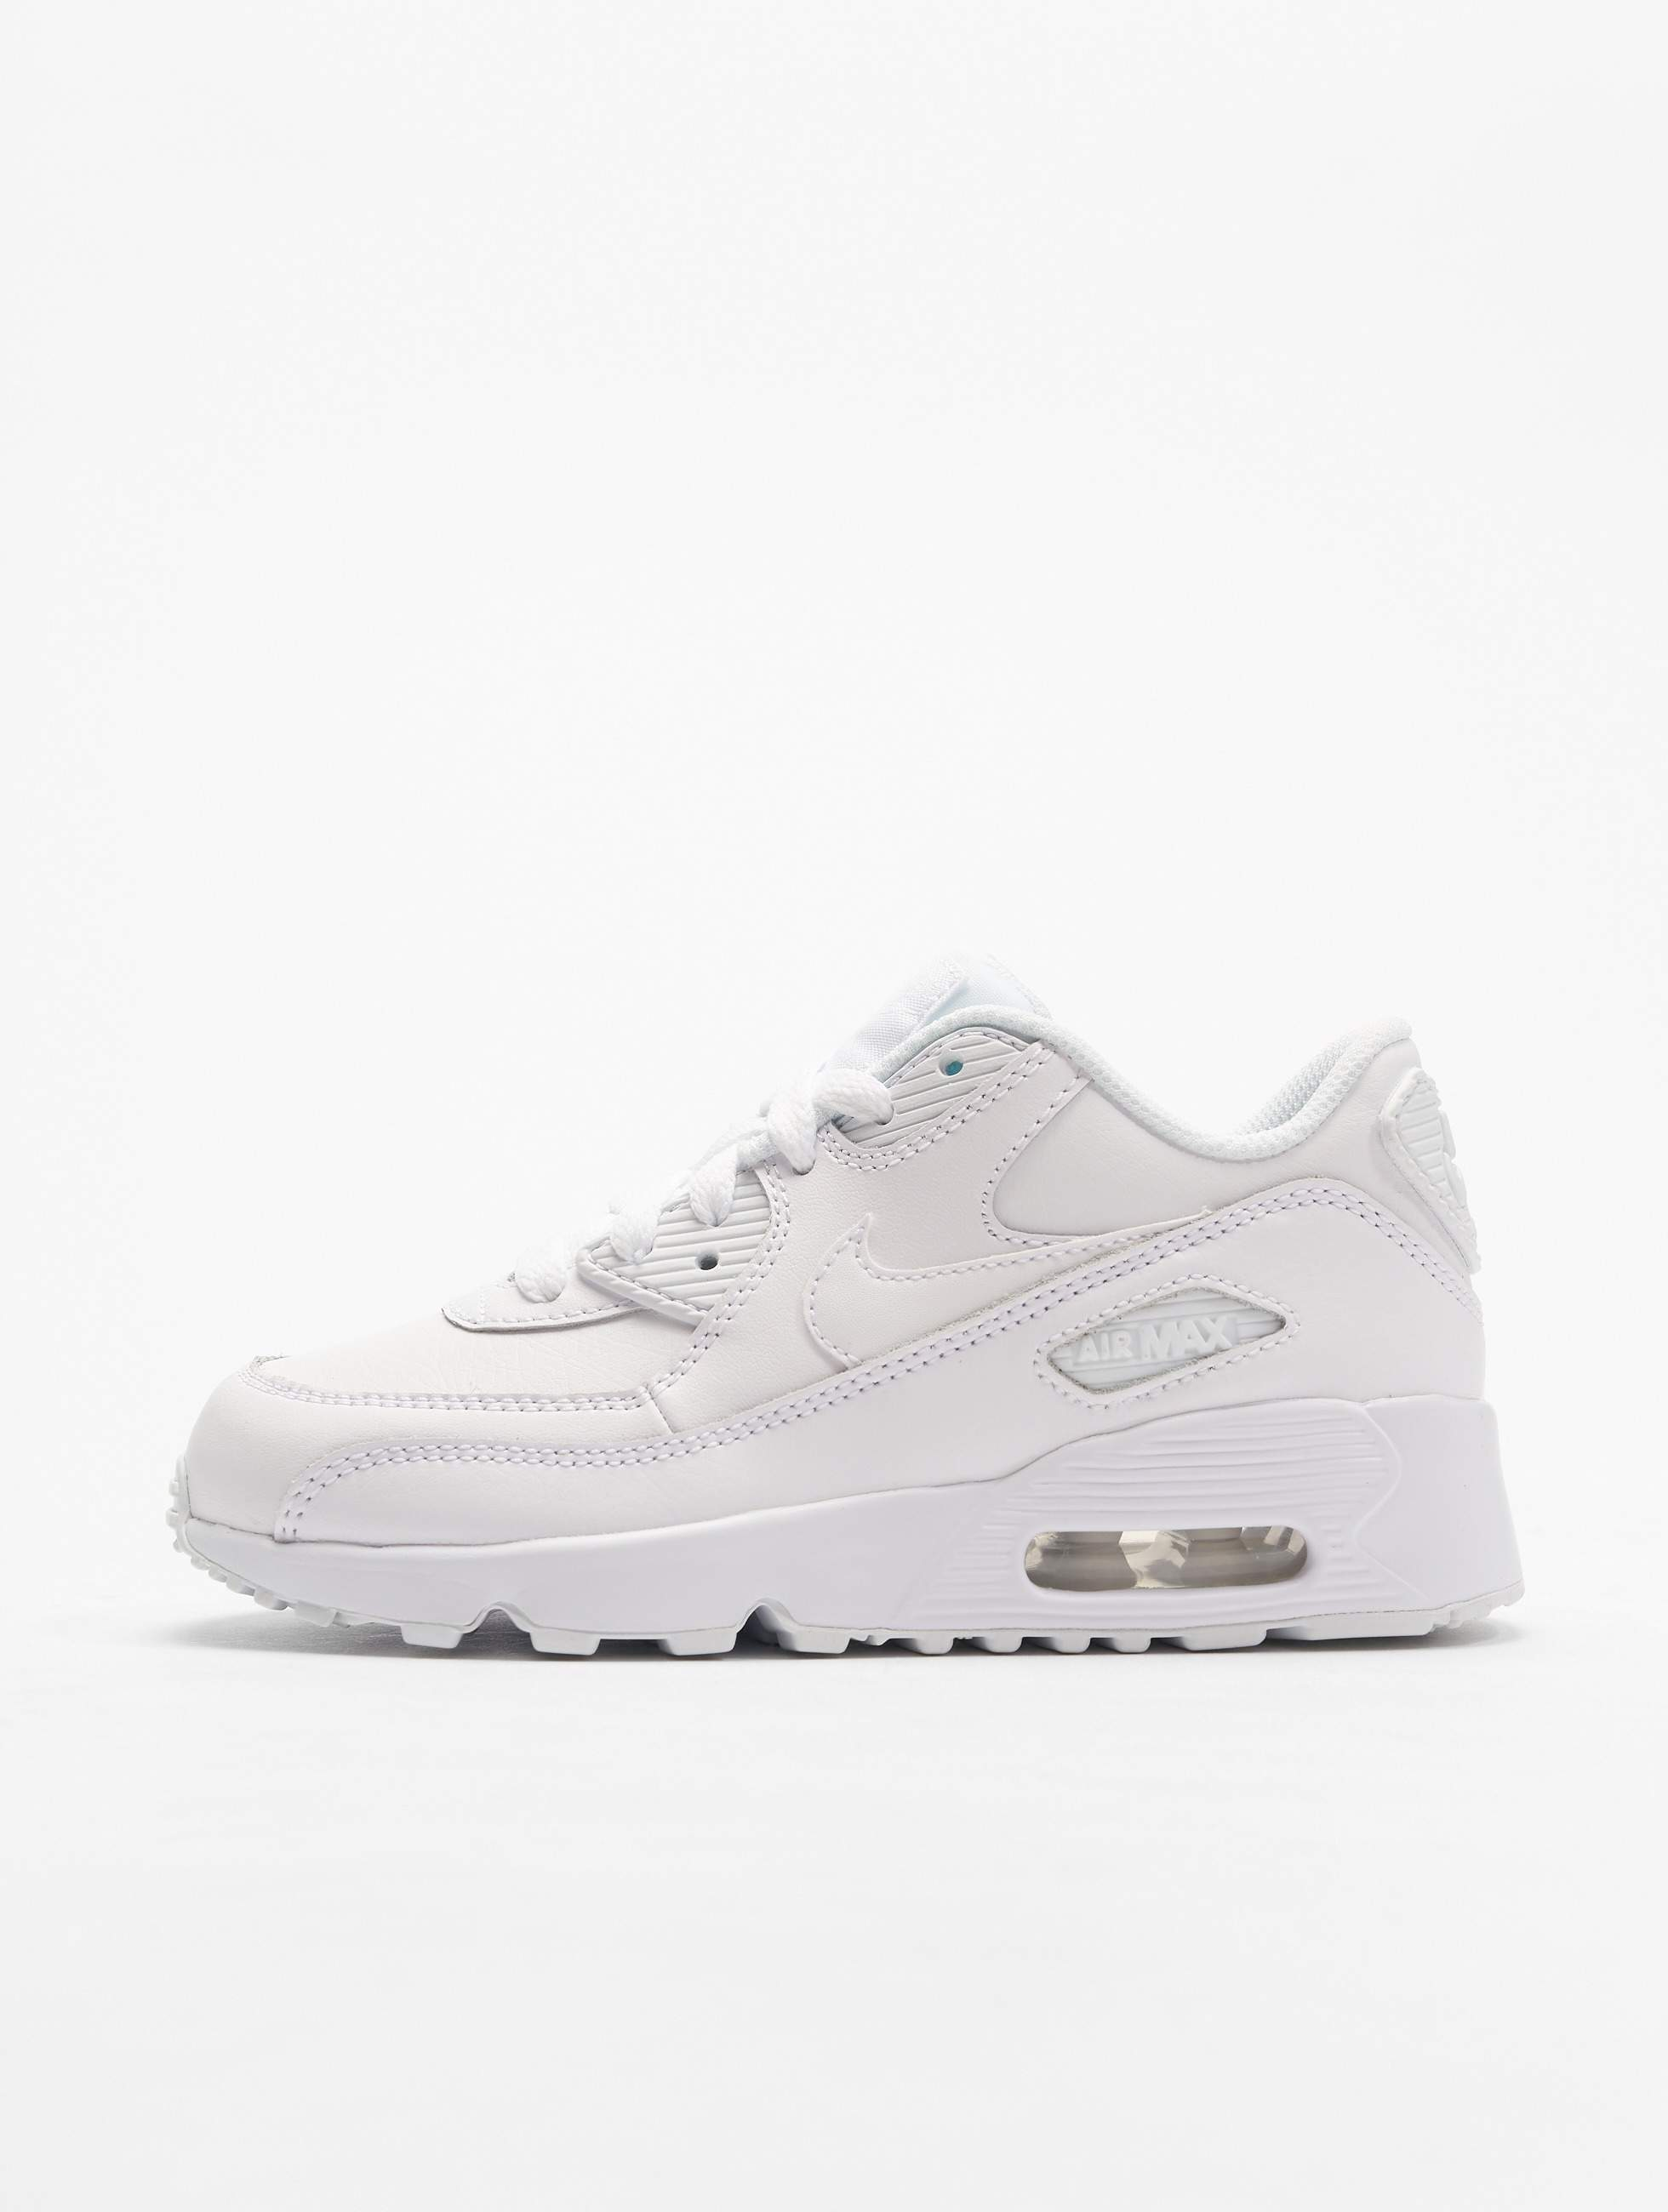 Nike Air Max 90 Leather PS Sneakers WhiteWhite